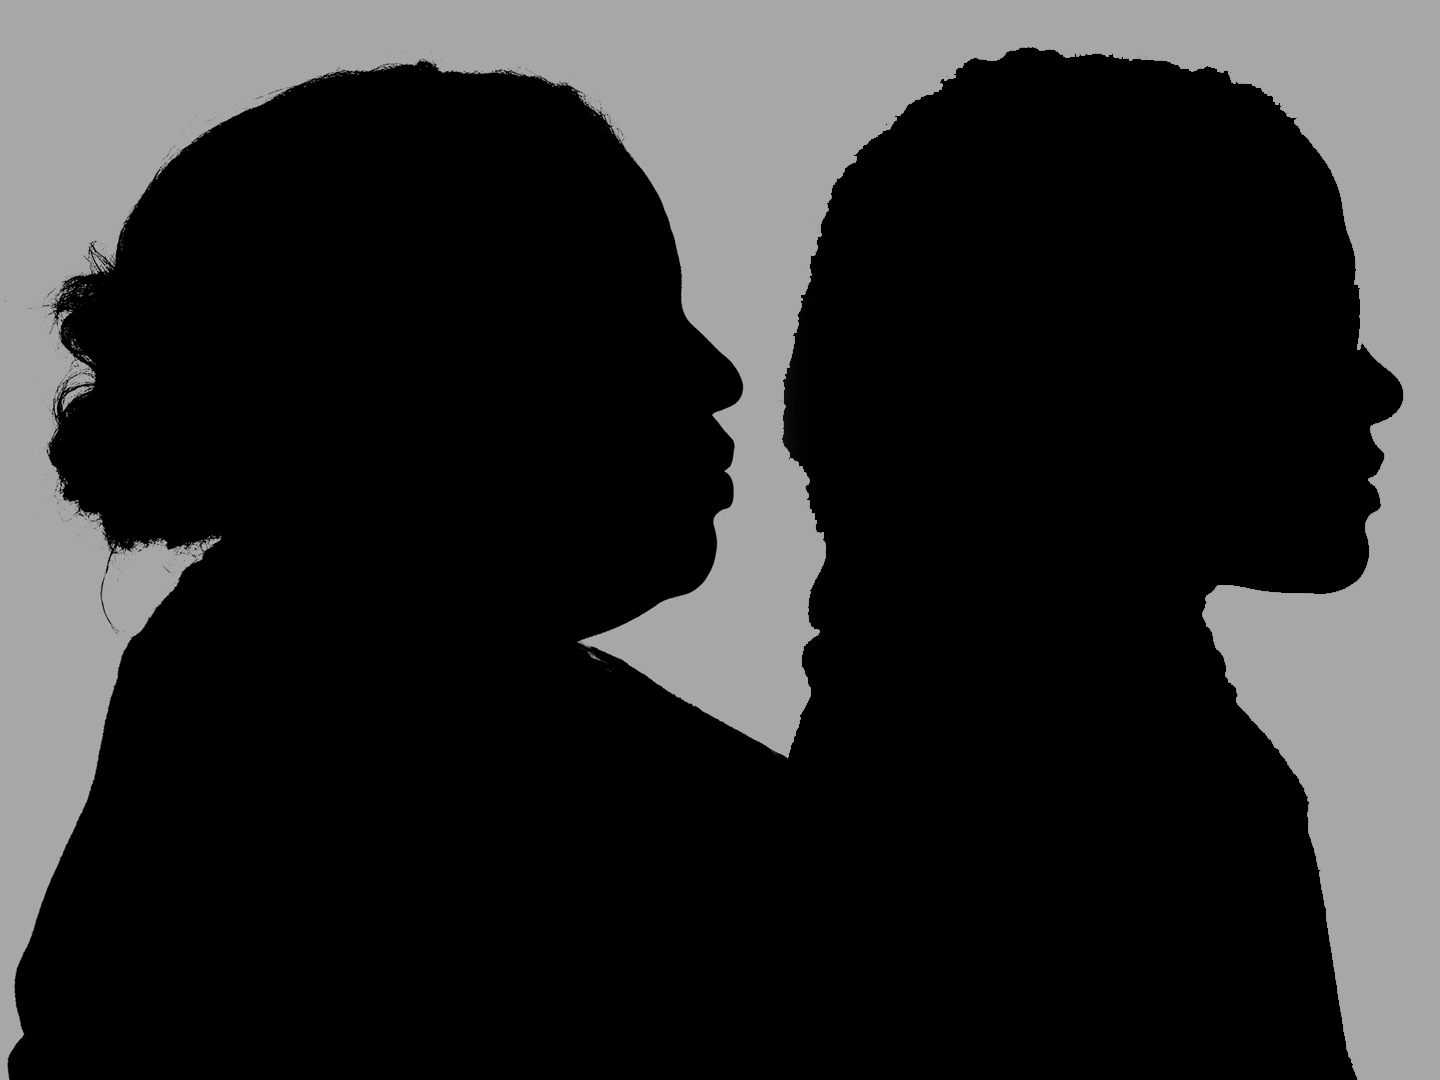 Silhouette of two Black women against a gray background.